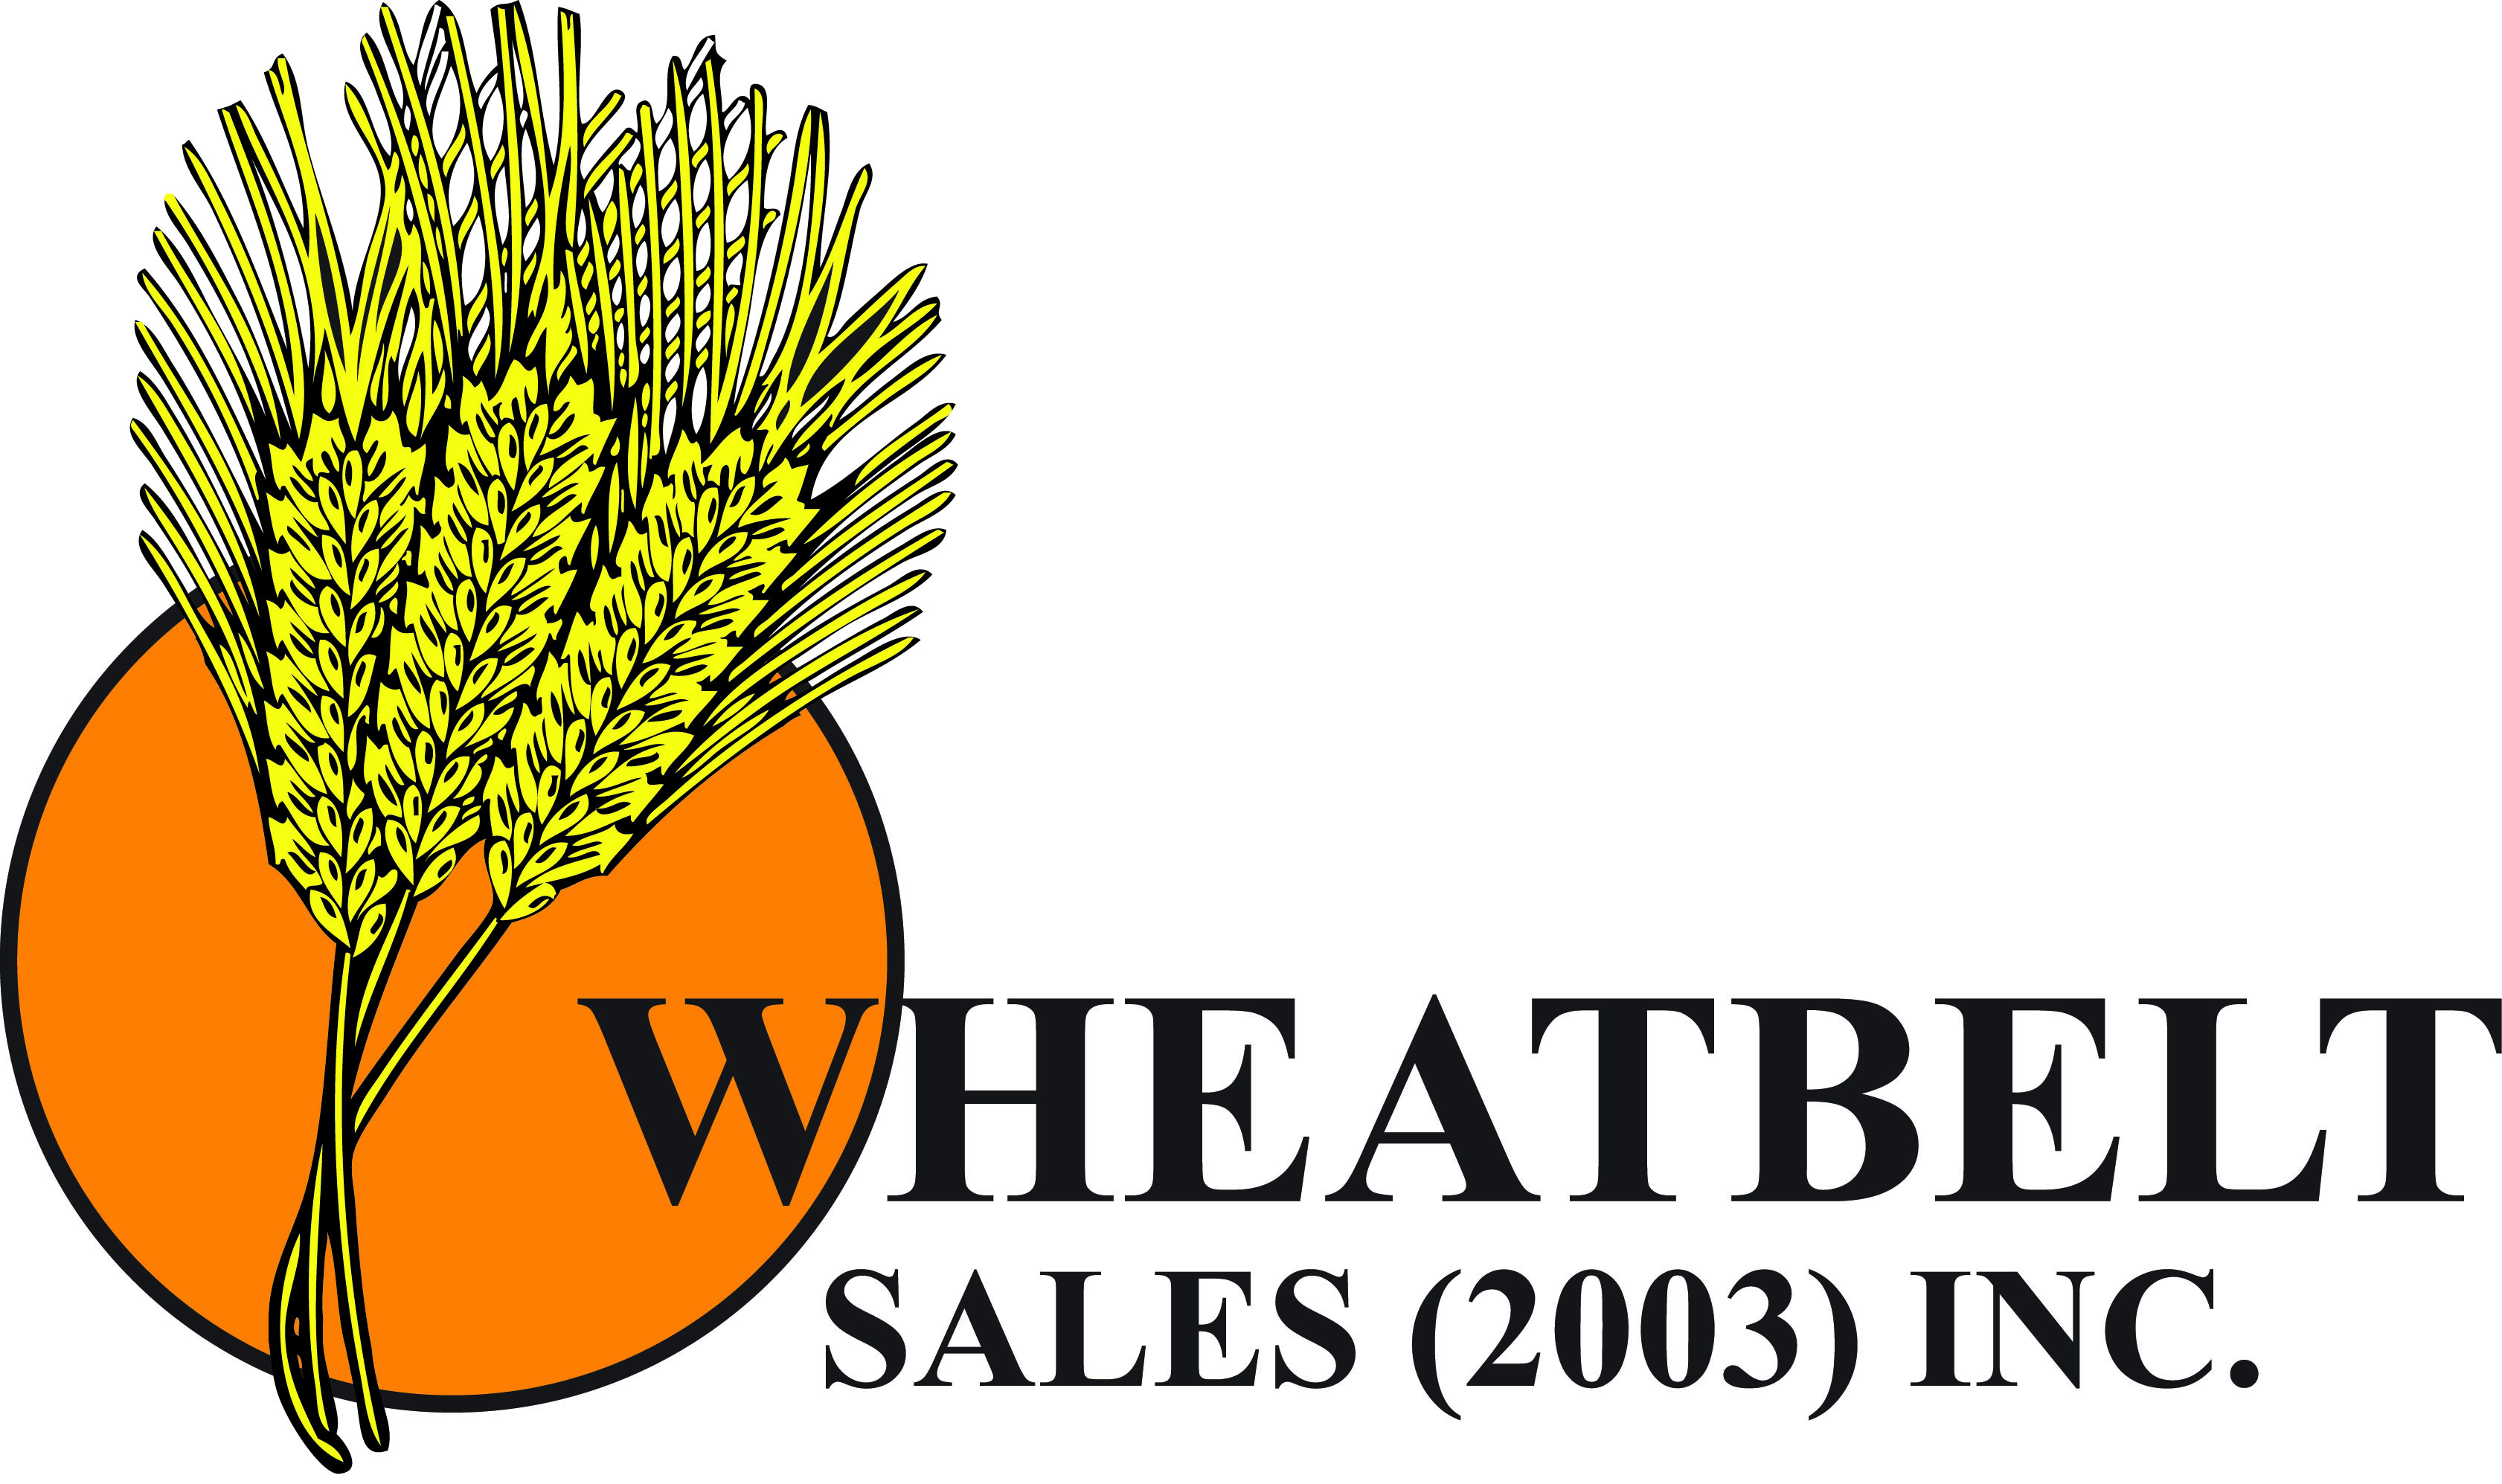 Wheatbelt Sales Inc.